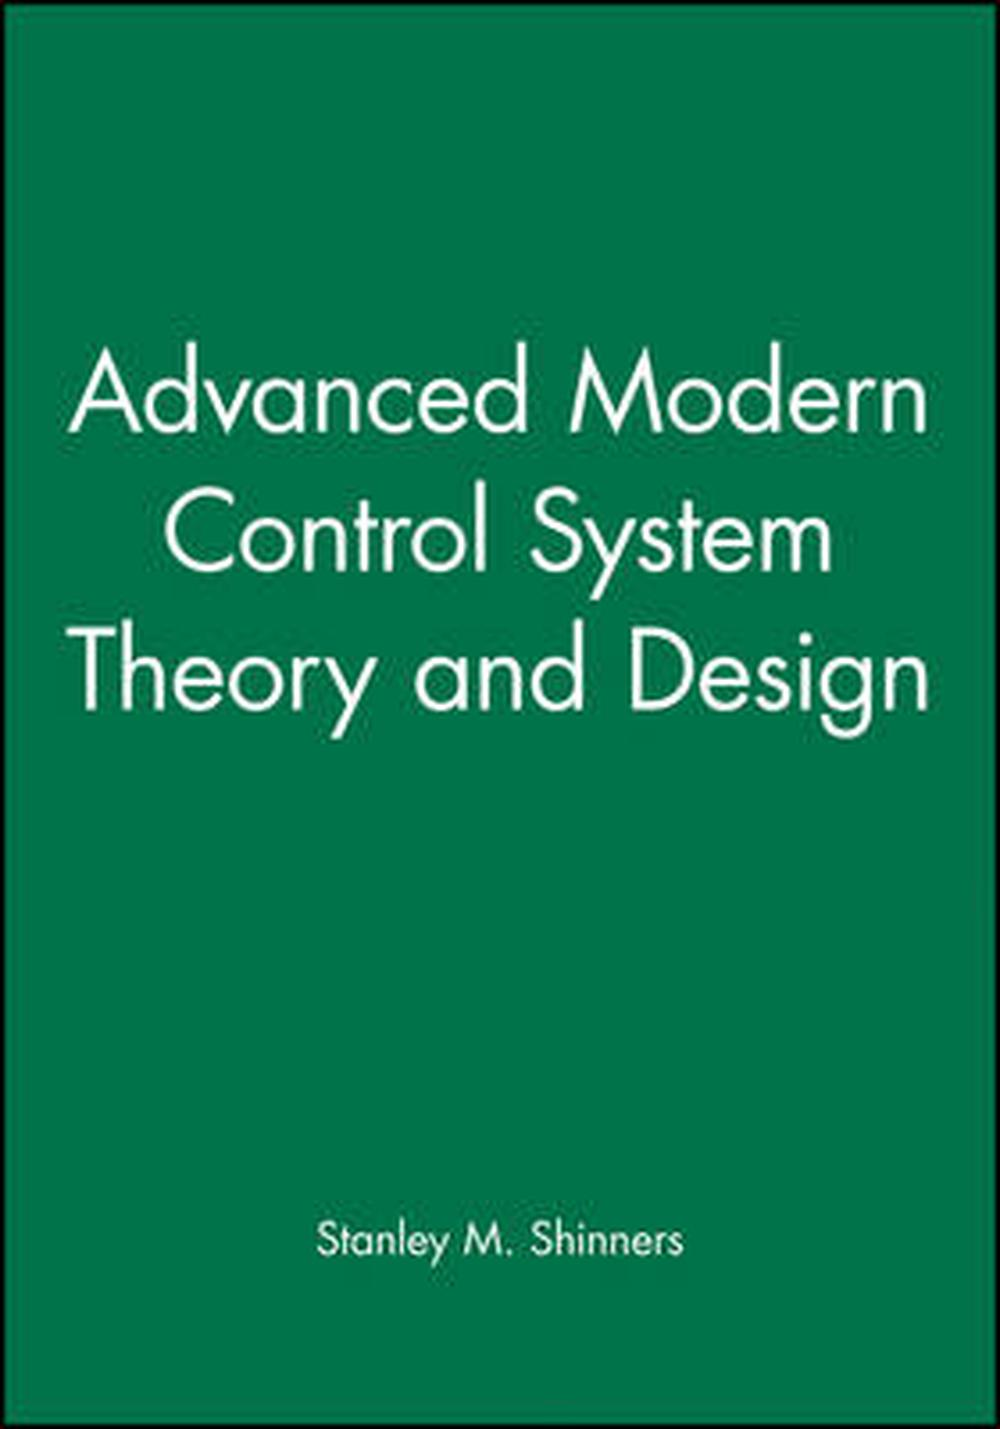 Advanced Modern Control System Theory and Design by Stanley M. Shinners  (English 9780471318576 | eBay